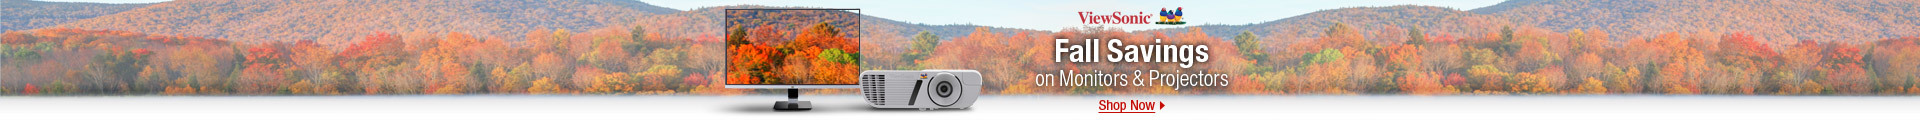 Fall savings on Monitors & Projectors